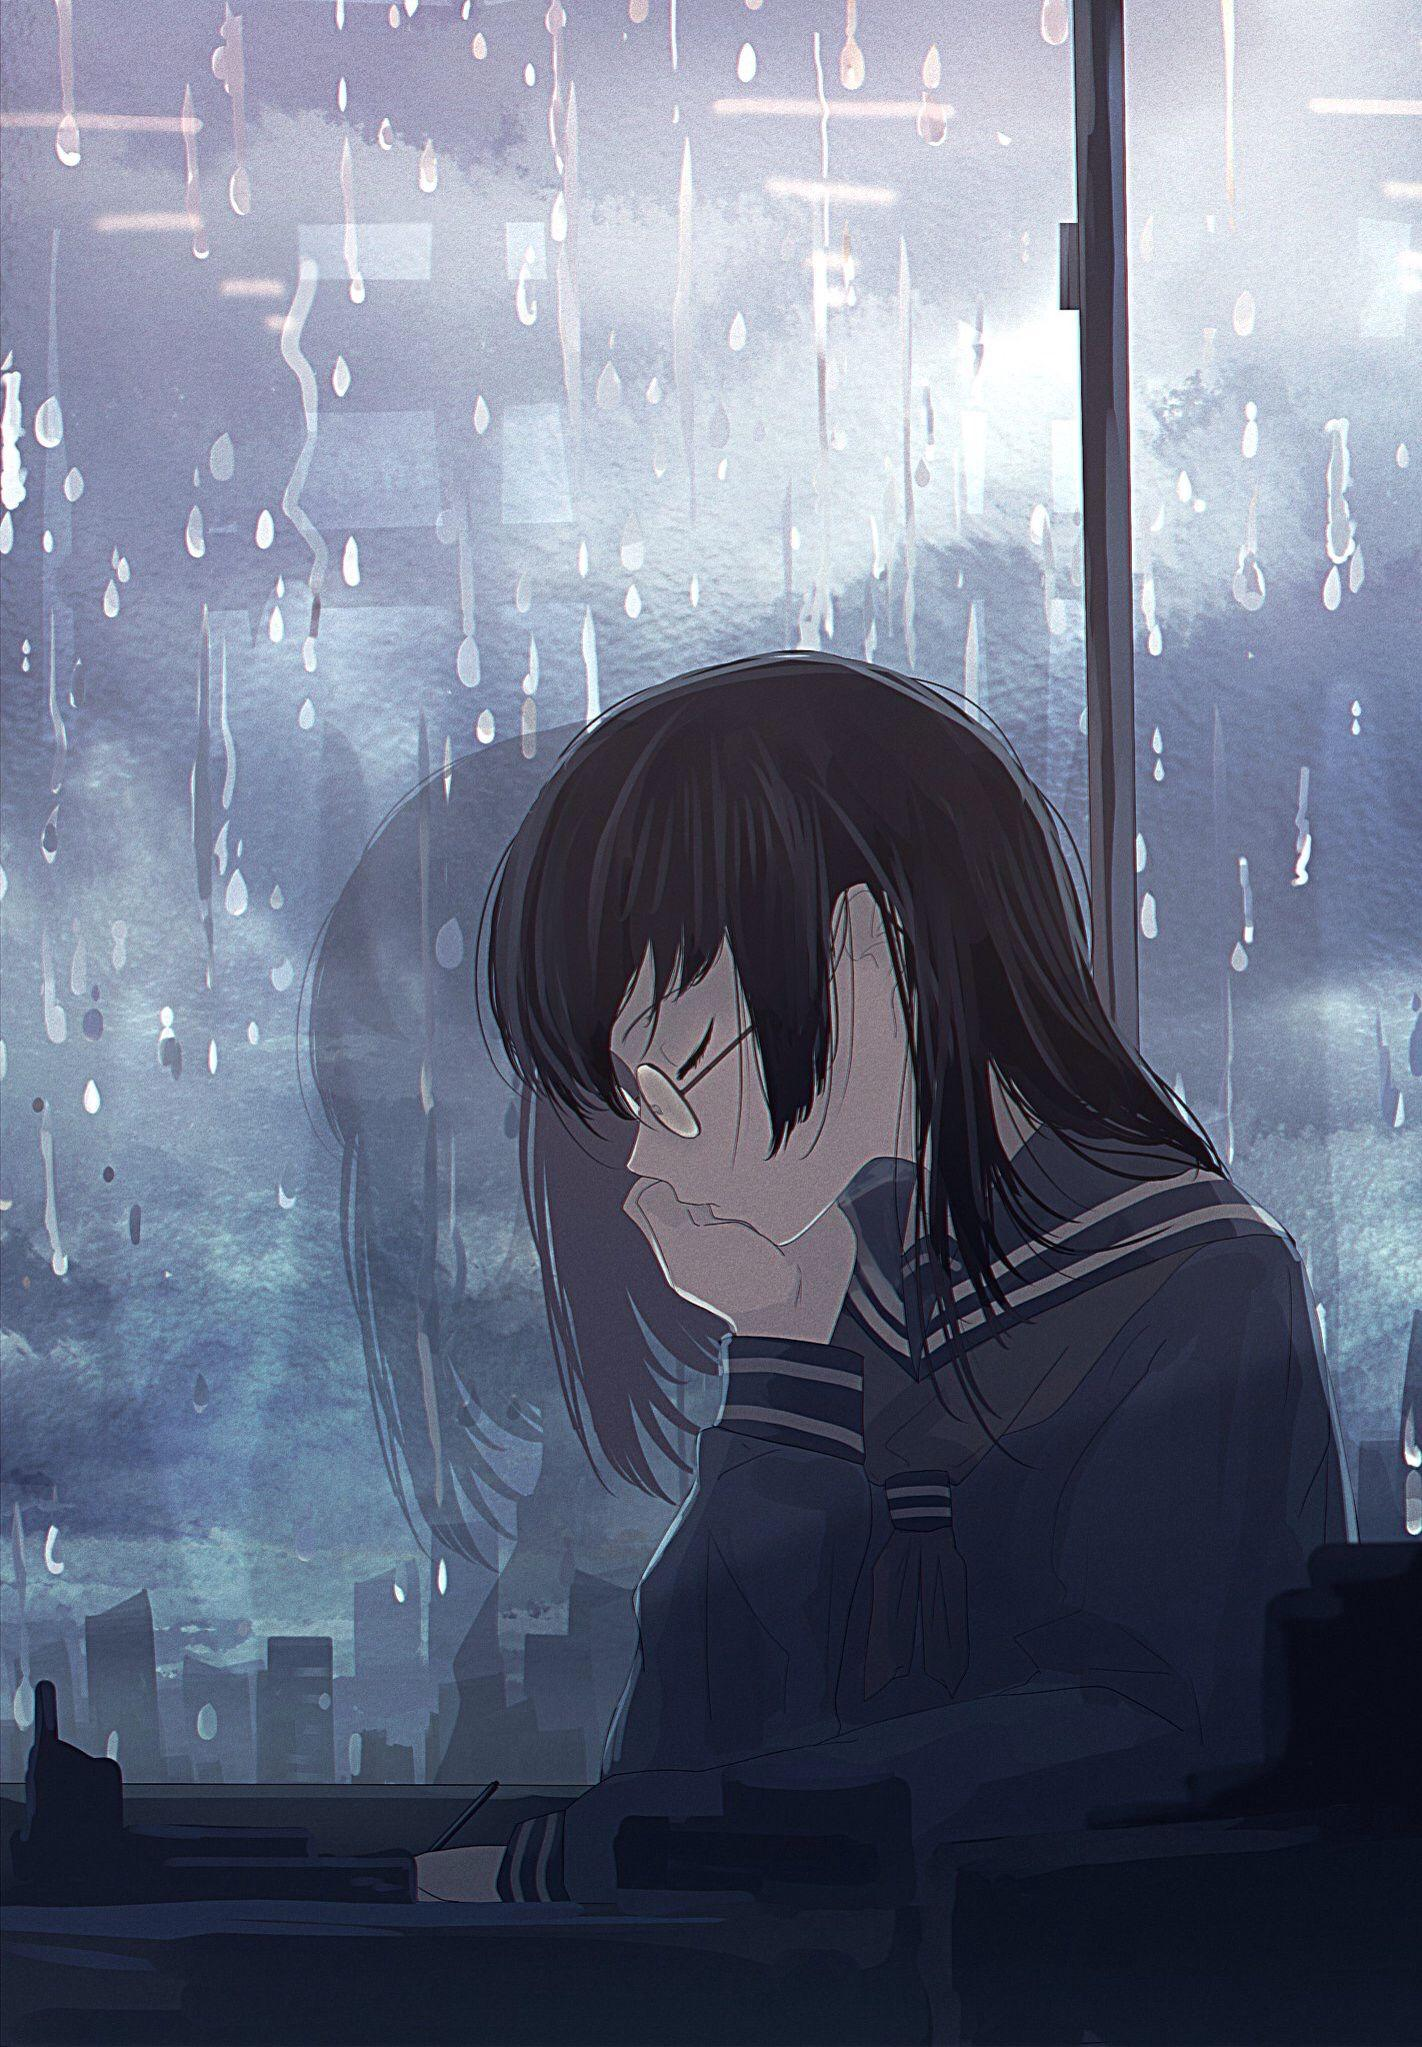 Anime Girl HD Cry Alone Wallpapers - Wallpaper Cave